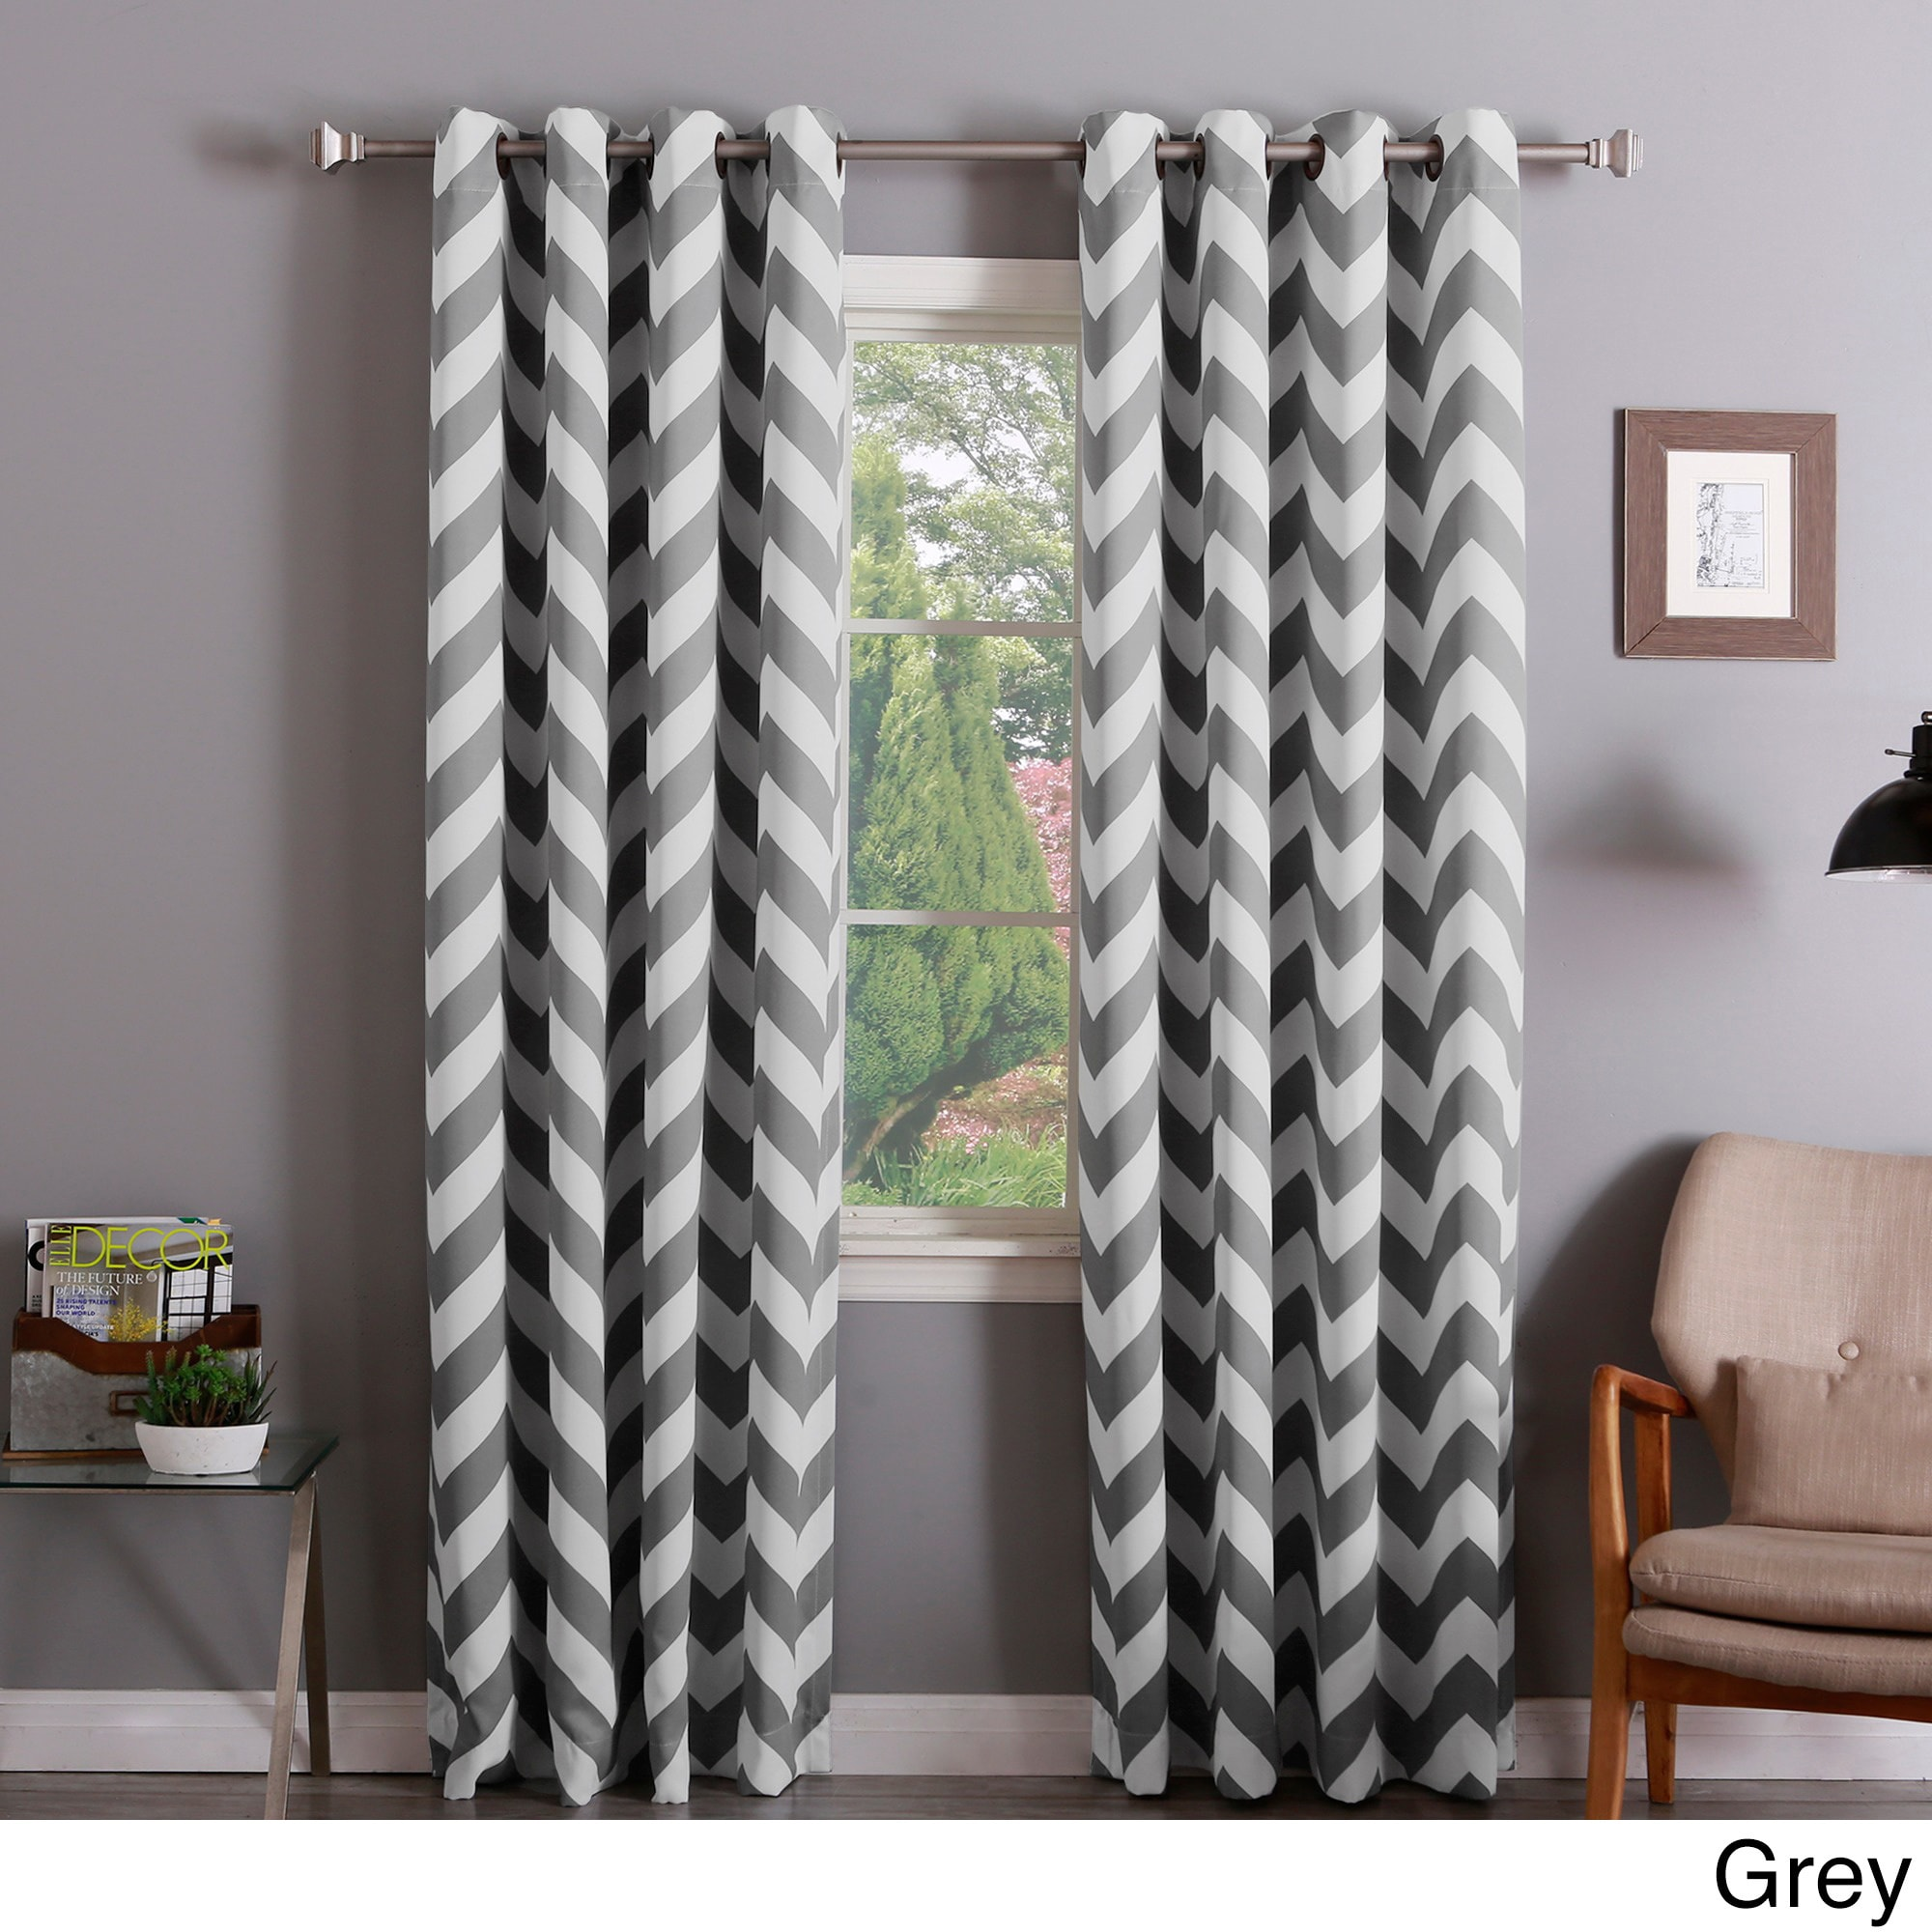 inch panels an fifth curtain house for drapes unexpected img source our